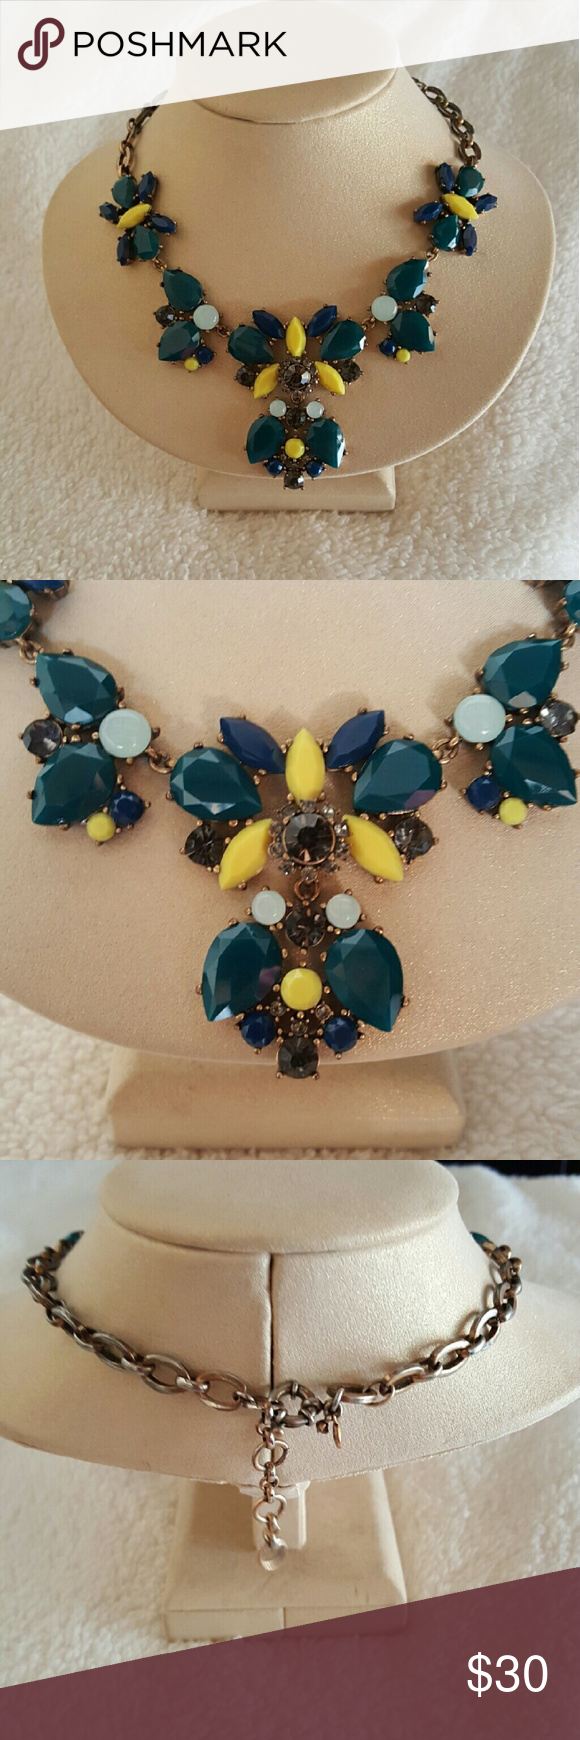 Statement necklace Beautiful Jcrew necklace! I love the color combo on this.  Pair it with collared shirts or plain tees to dress it up! Nicely weighted as well! J. Crew Accessories